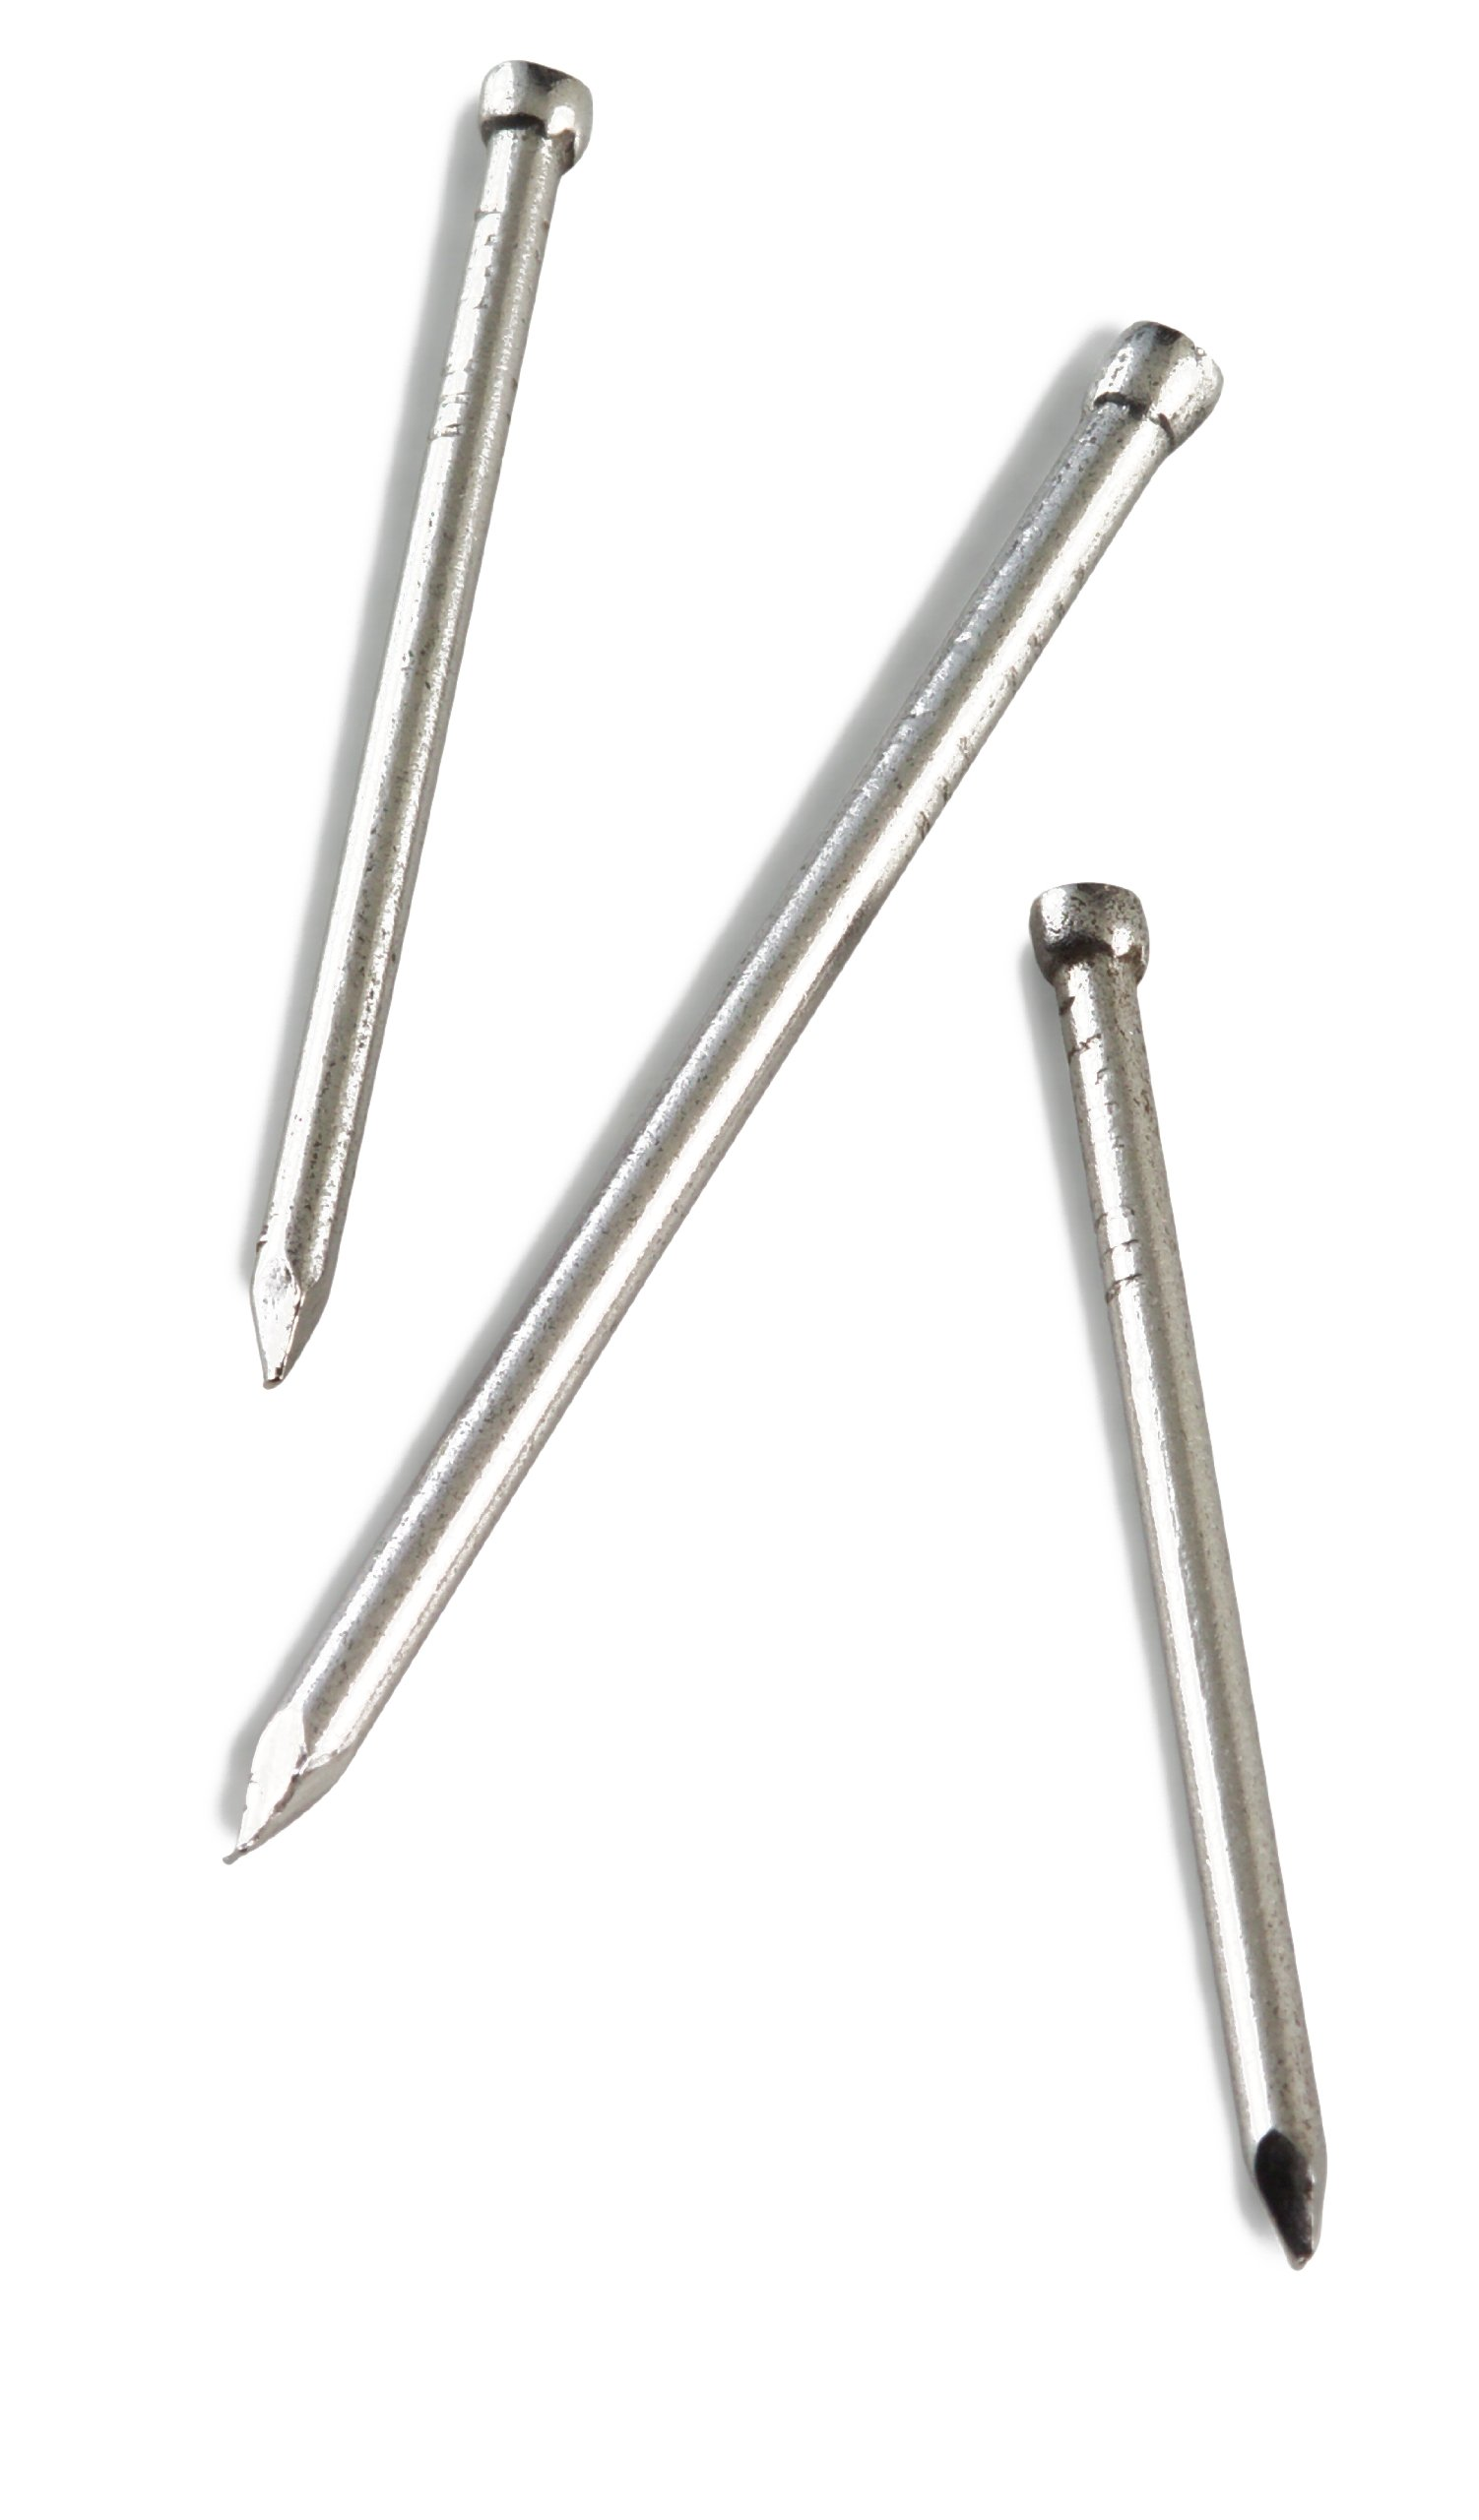 Simpson Strong Tie S4FN1 4d Hand-Drive Finishing Nails with 1-1/2-Inch 14 Gauge 304 1-Pound Stainless Steel